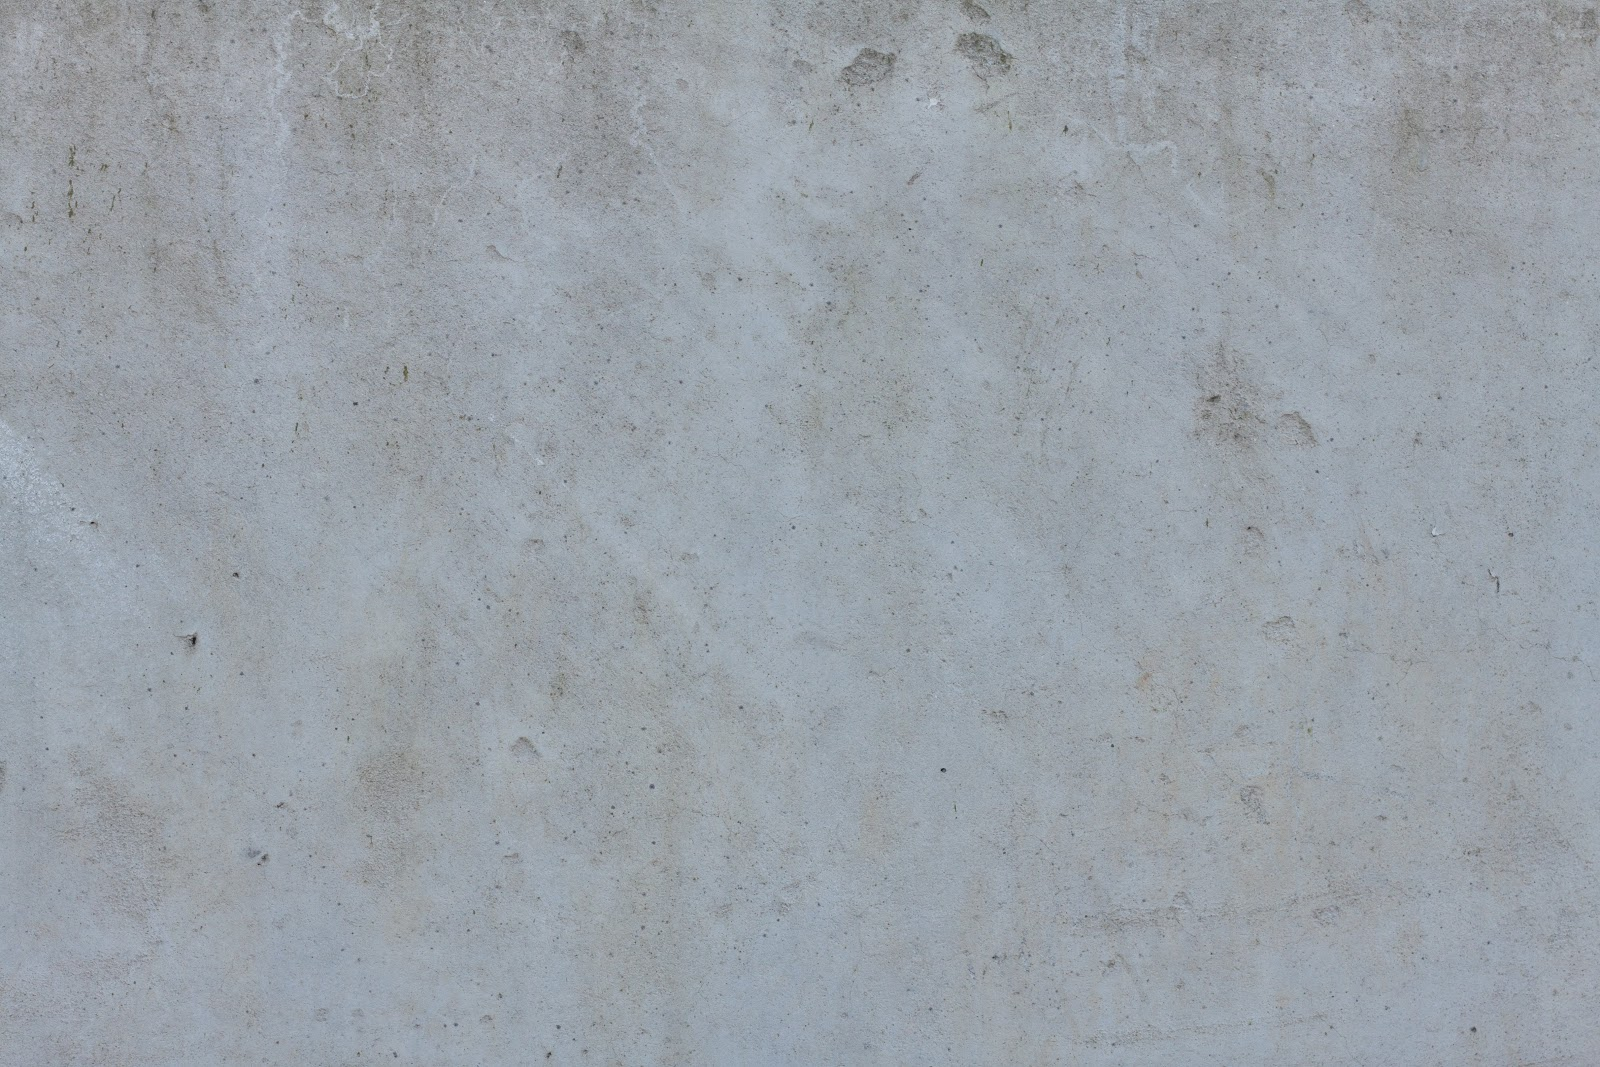 Smooth detailed concrete garage wall 4752x3168